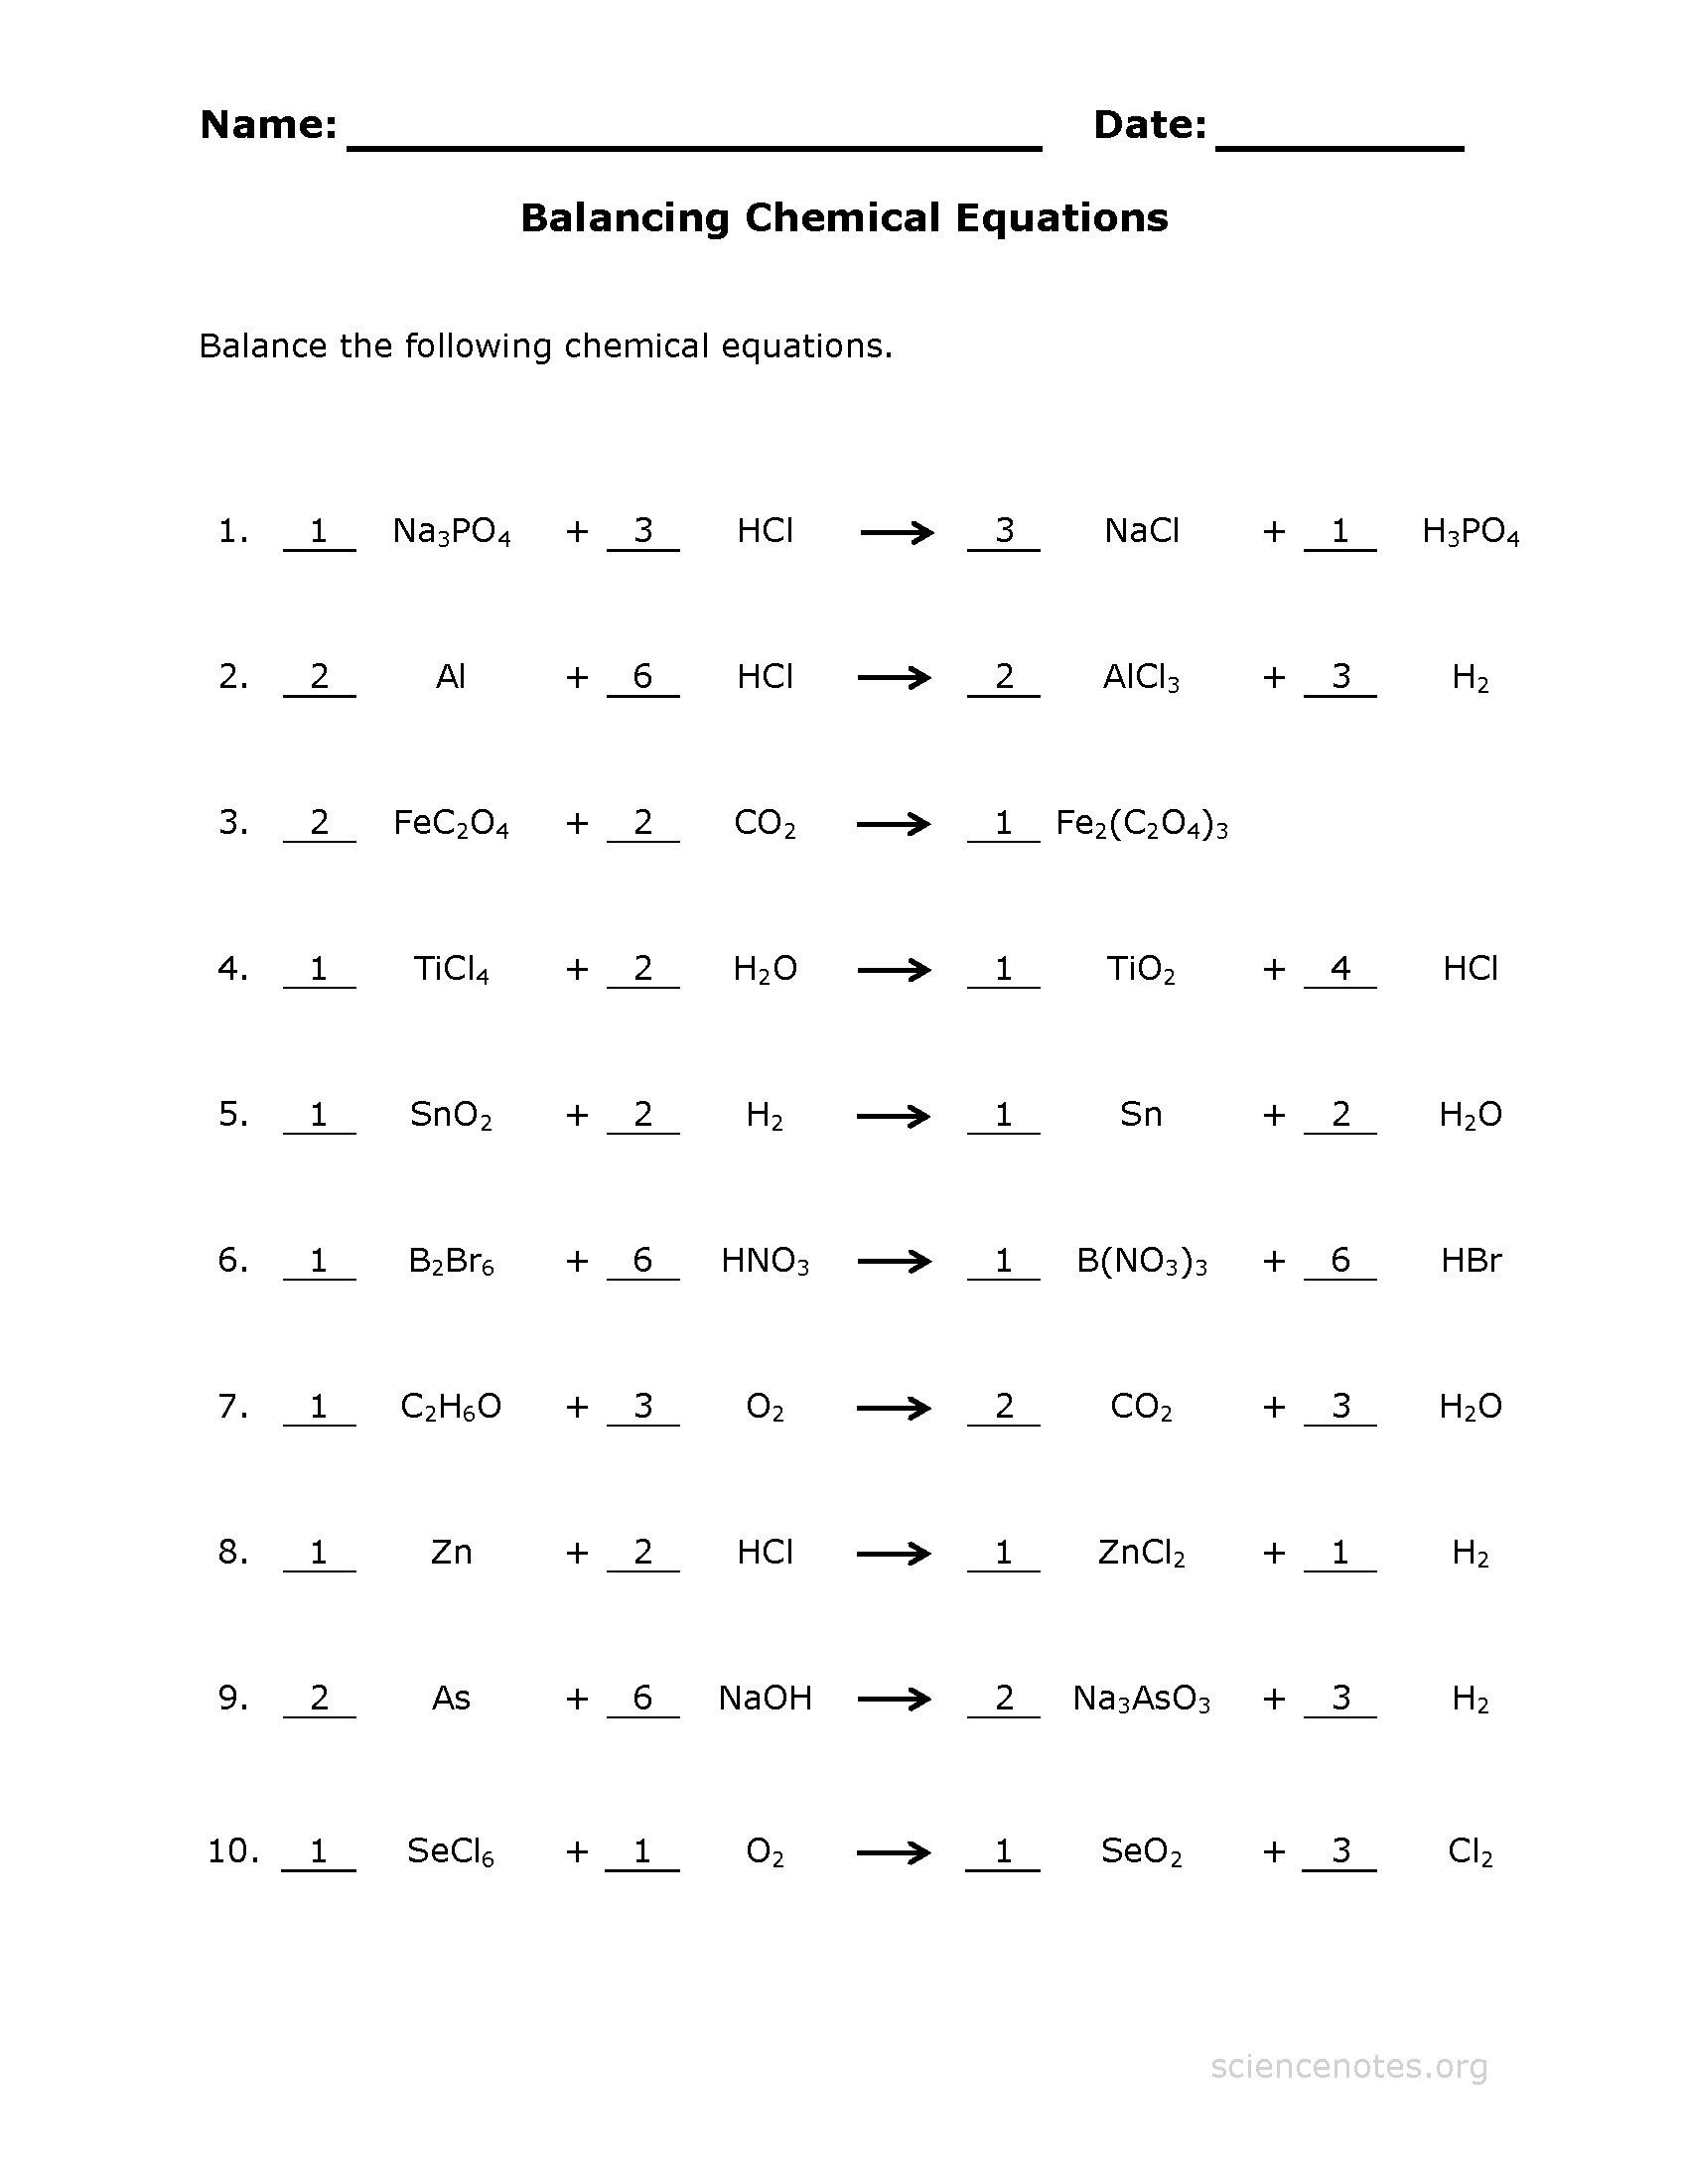 Balance Chemical Equations Worksheet 4 Key - Science Notes and ...